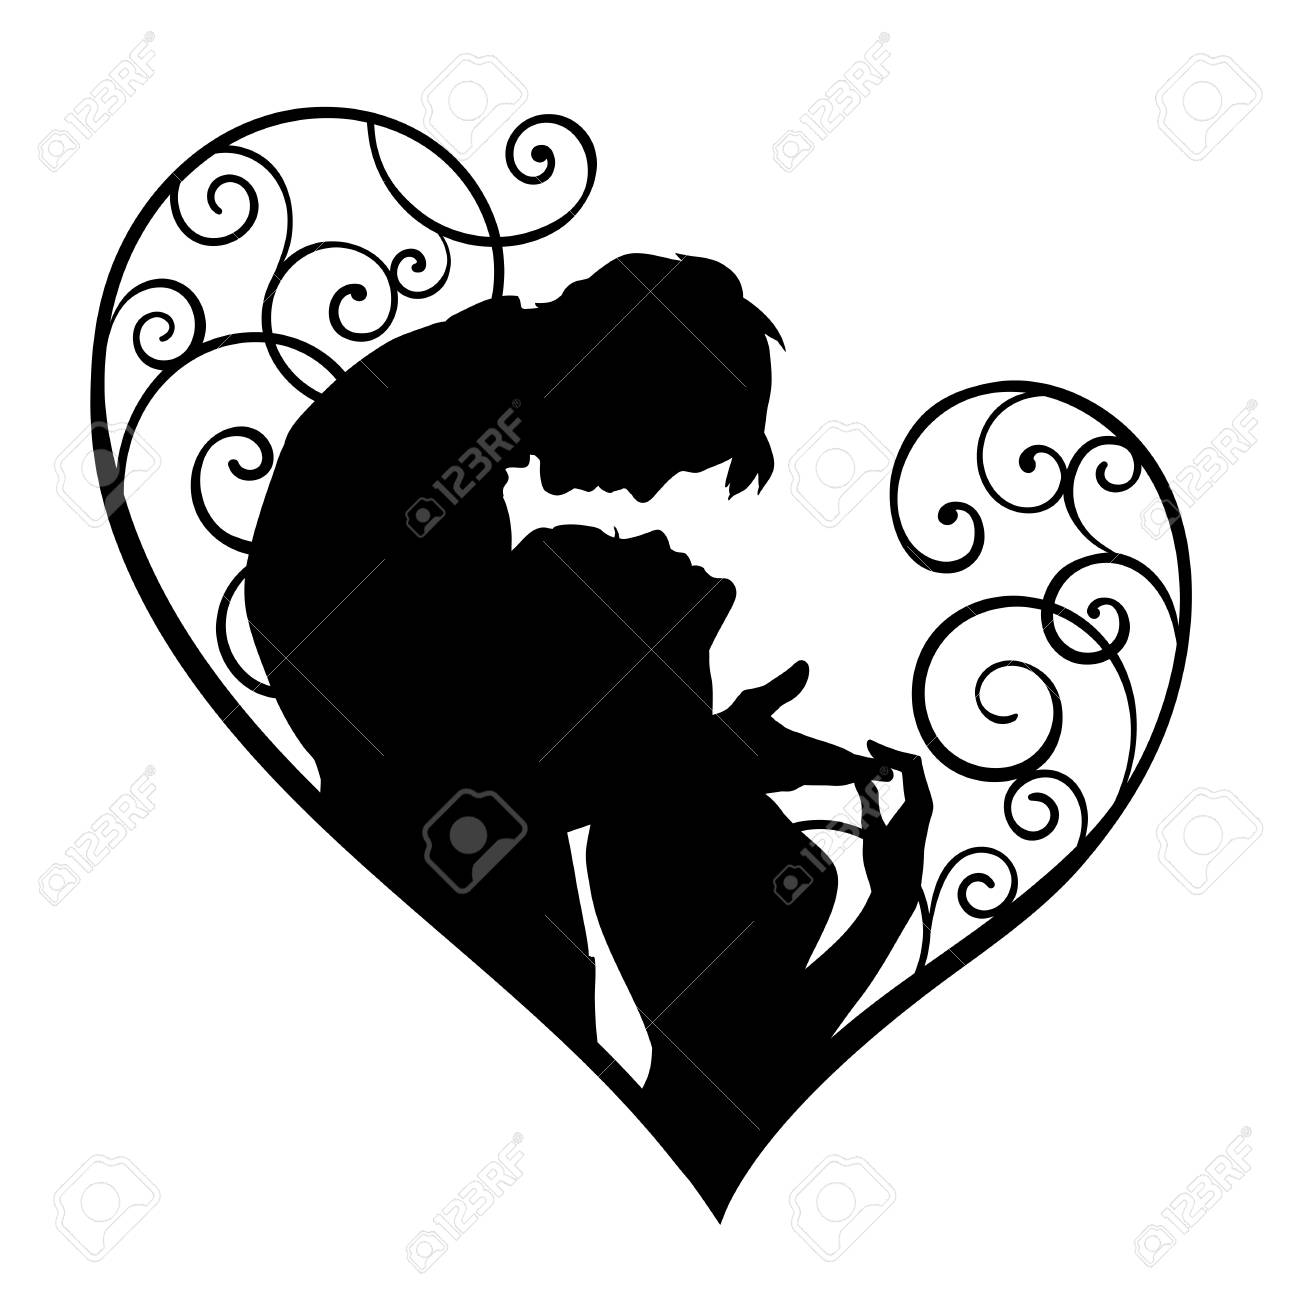 Loving Couple In Decorative Heart Sketch Silhouette Isolated Royalty Free Cliparts Vectors And Stock Illustration Image 72458819